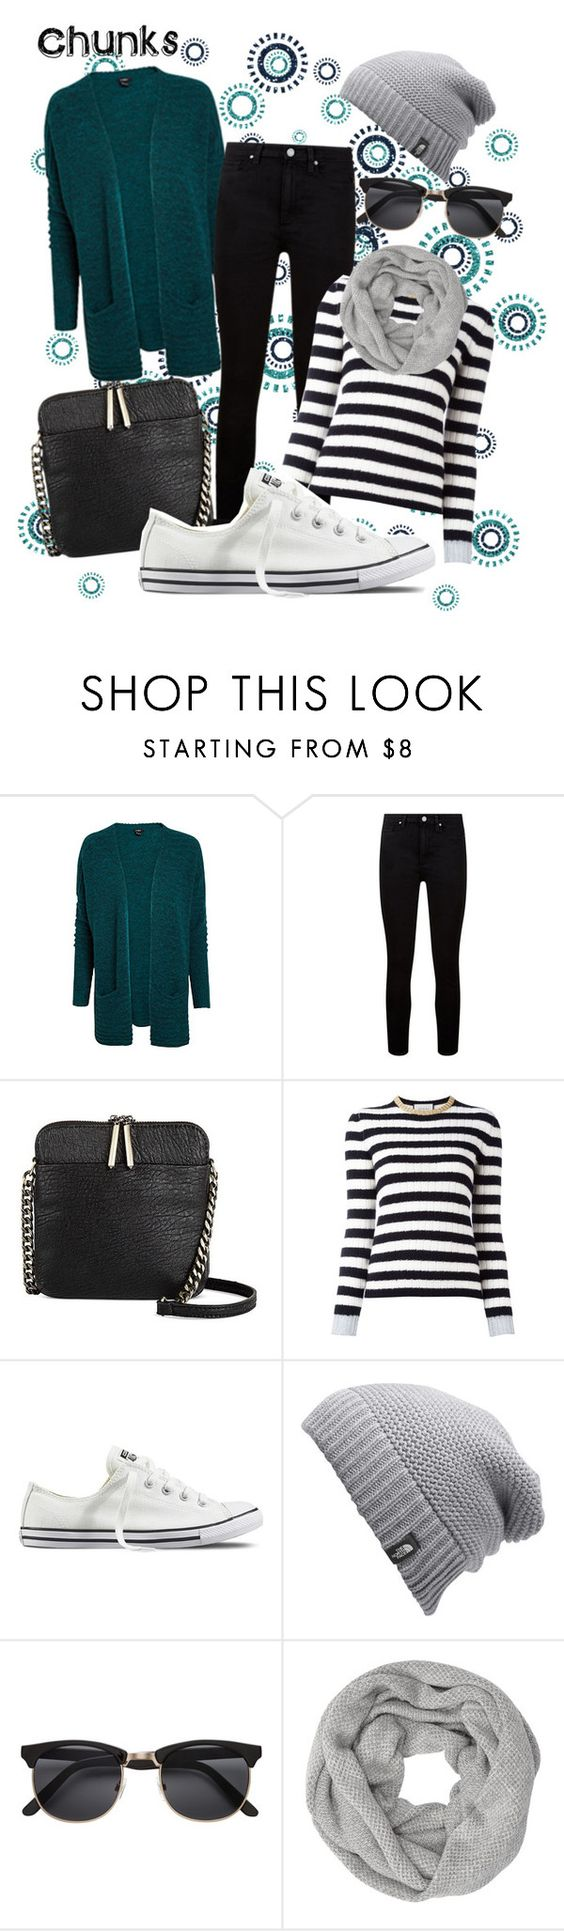 """Chunks"" by sana-emara ❤ liked on Polyvore featuring Paige Denim, Miztique, Gucci, Converse, The North Face, H&M and John Lewis"